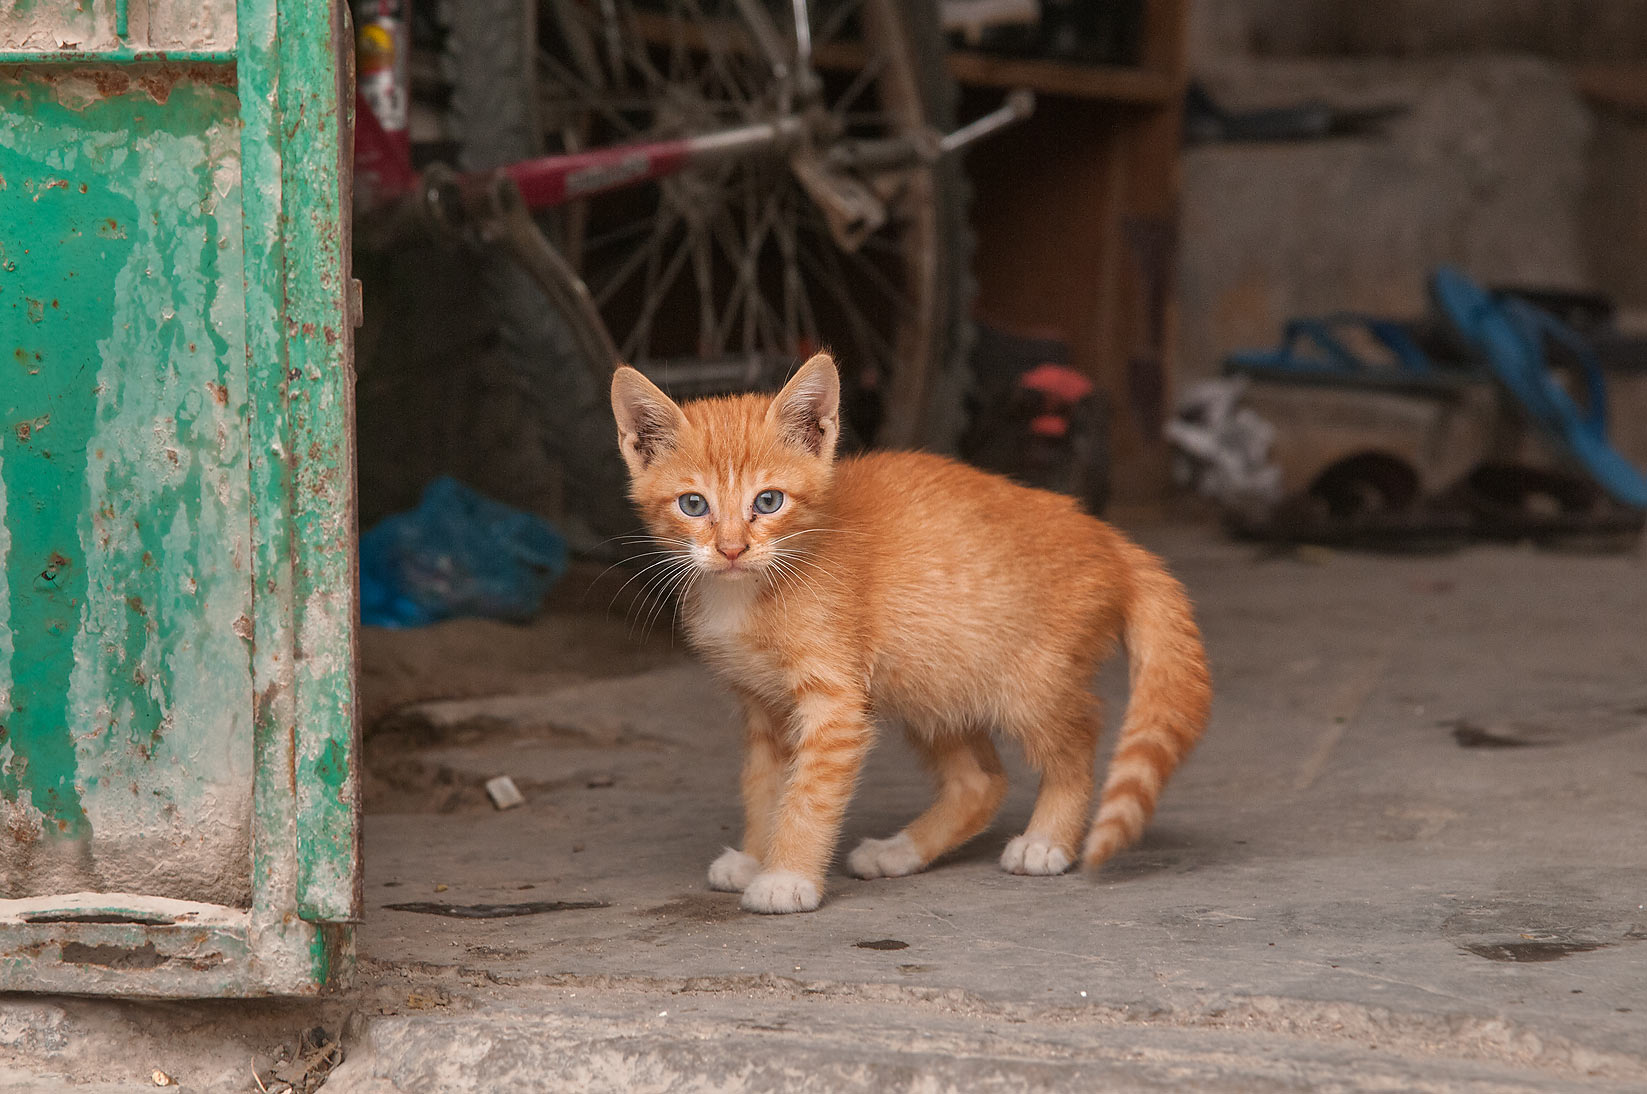 Brown kitten in a doorway at Al Jassasiya St., Musheirib area. Doha, Qatar